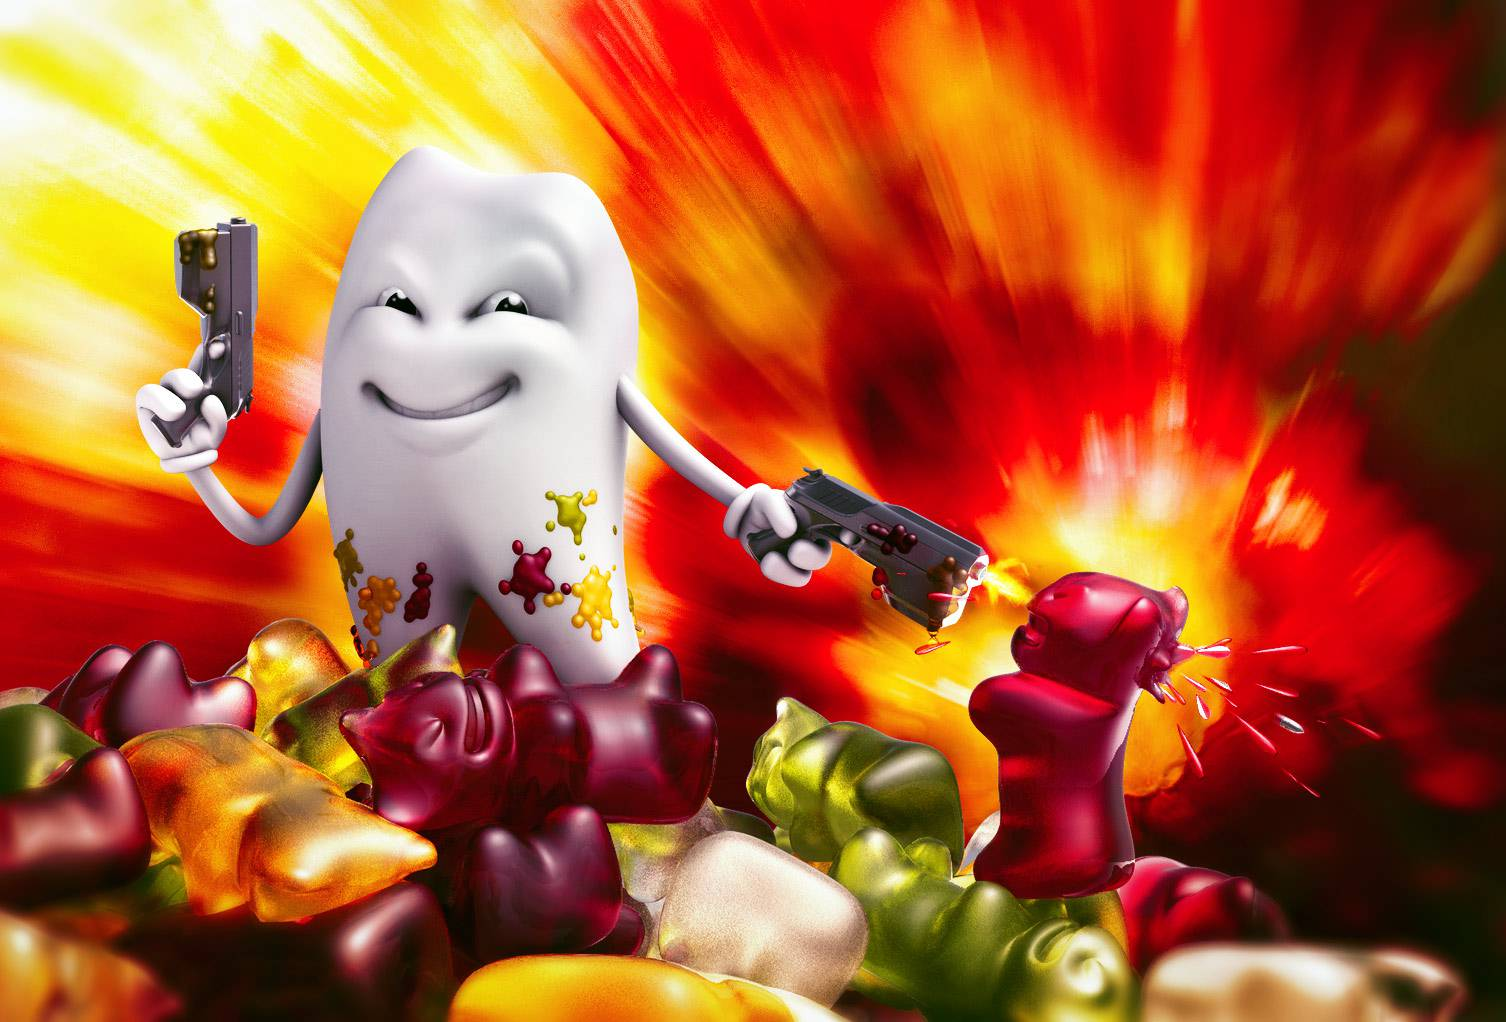 Tooth gummies wallpaper HQ WALLPAPER   21733 1506x1022